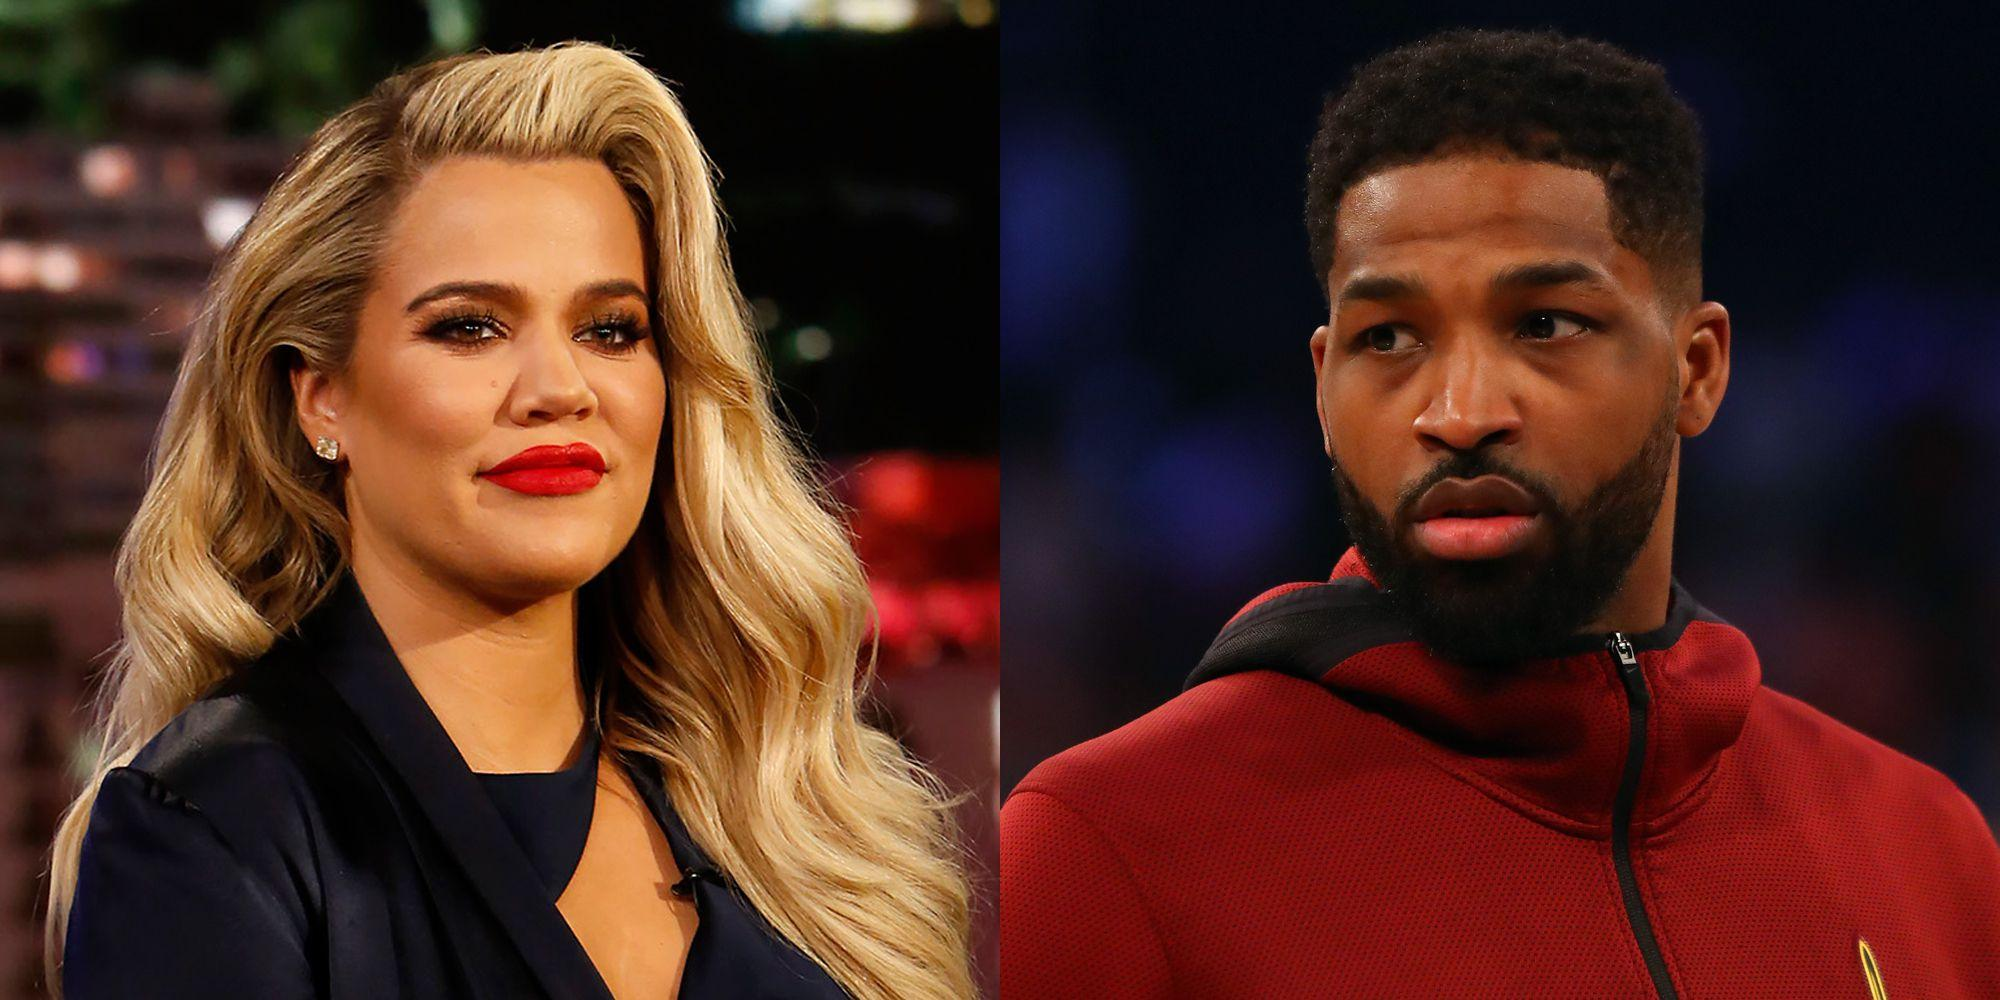 Tristan Thompson Allegedly Is Taking Advice From Drake On How To Win Khloe Kardashian Back -- NBA Baller Drops $400K On A 'Sorry' Gift